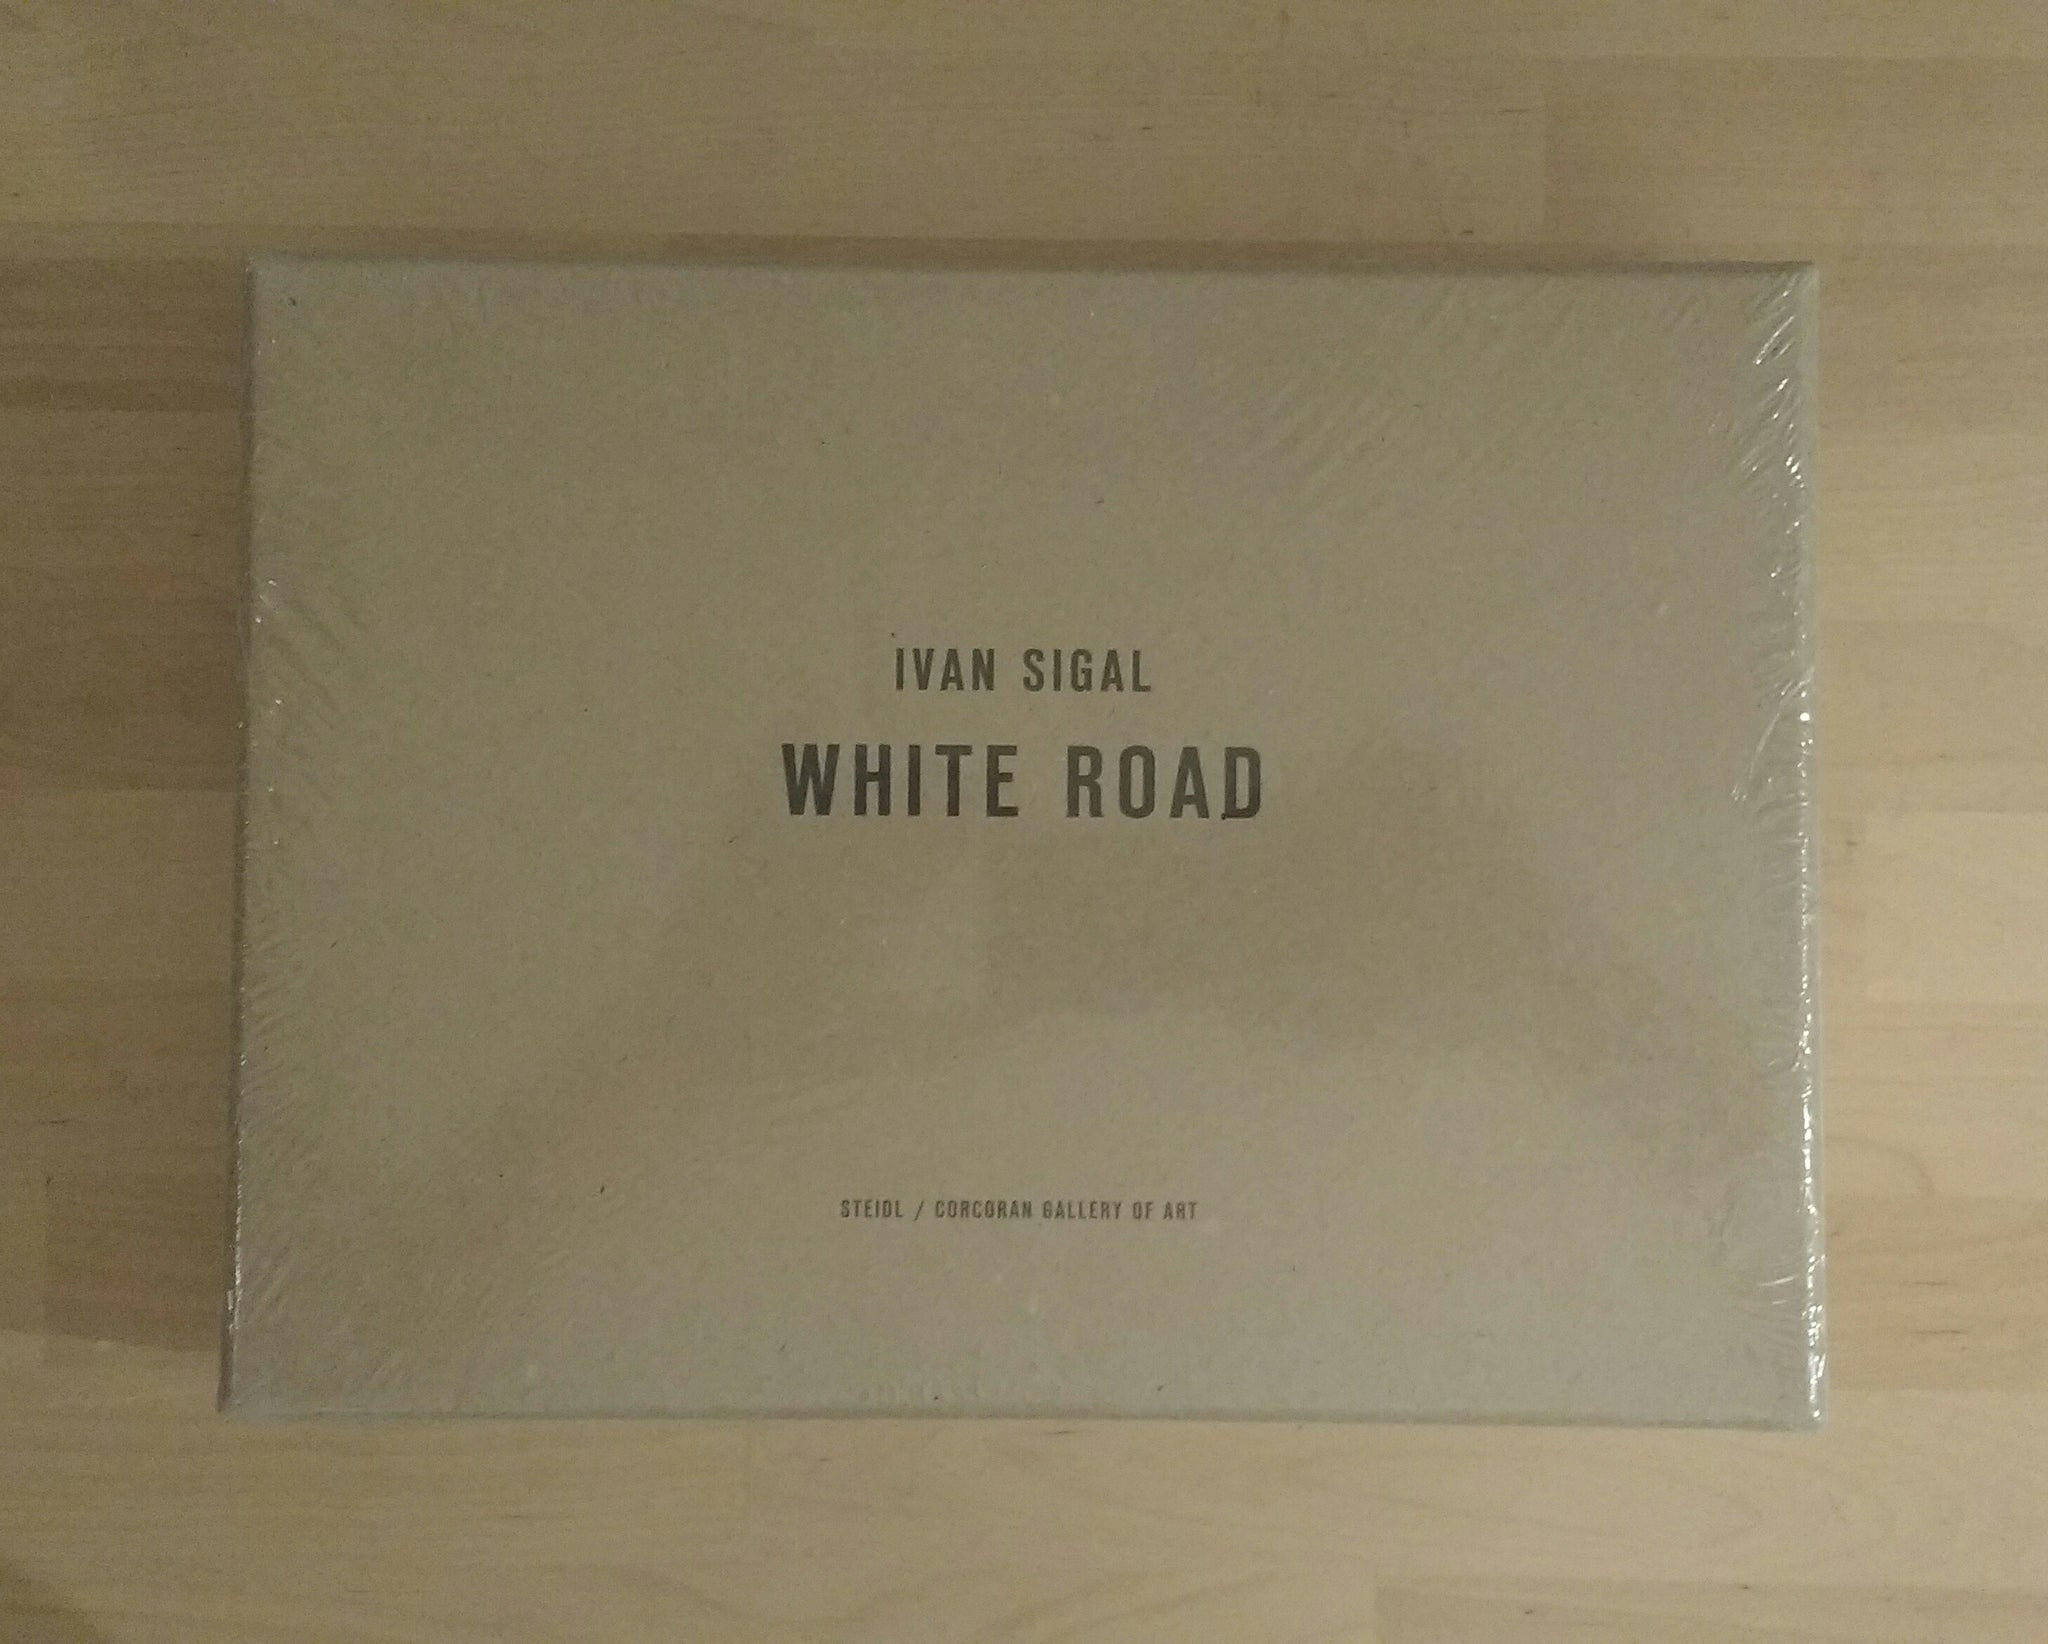 White Road | Ivan Sigal | Steidl 2012